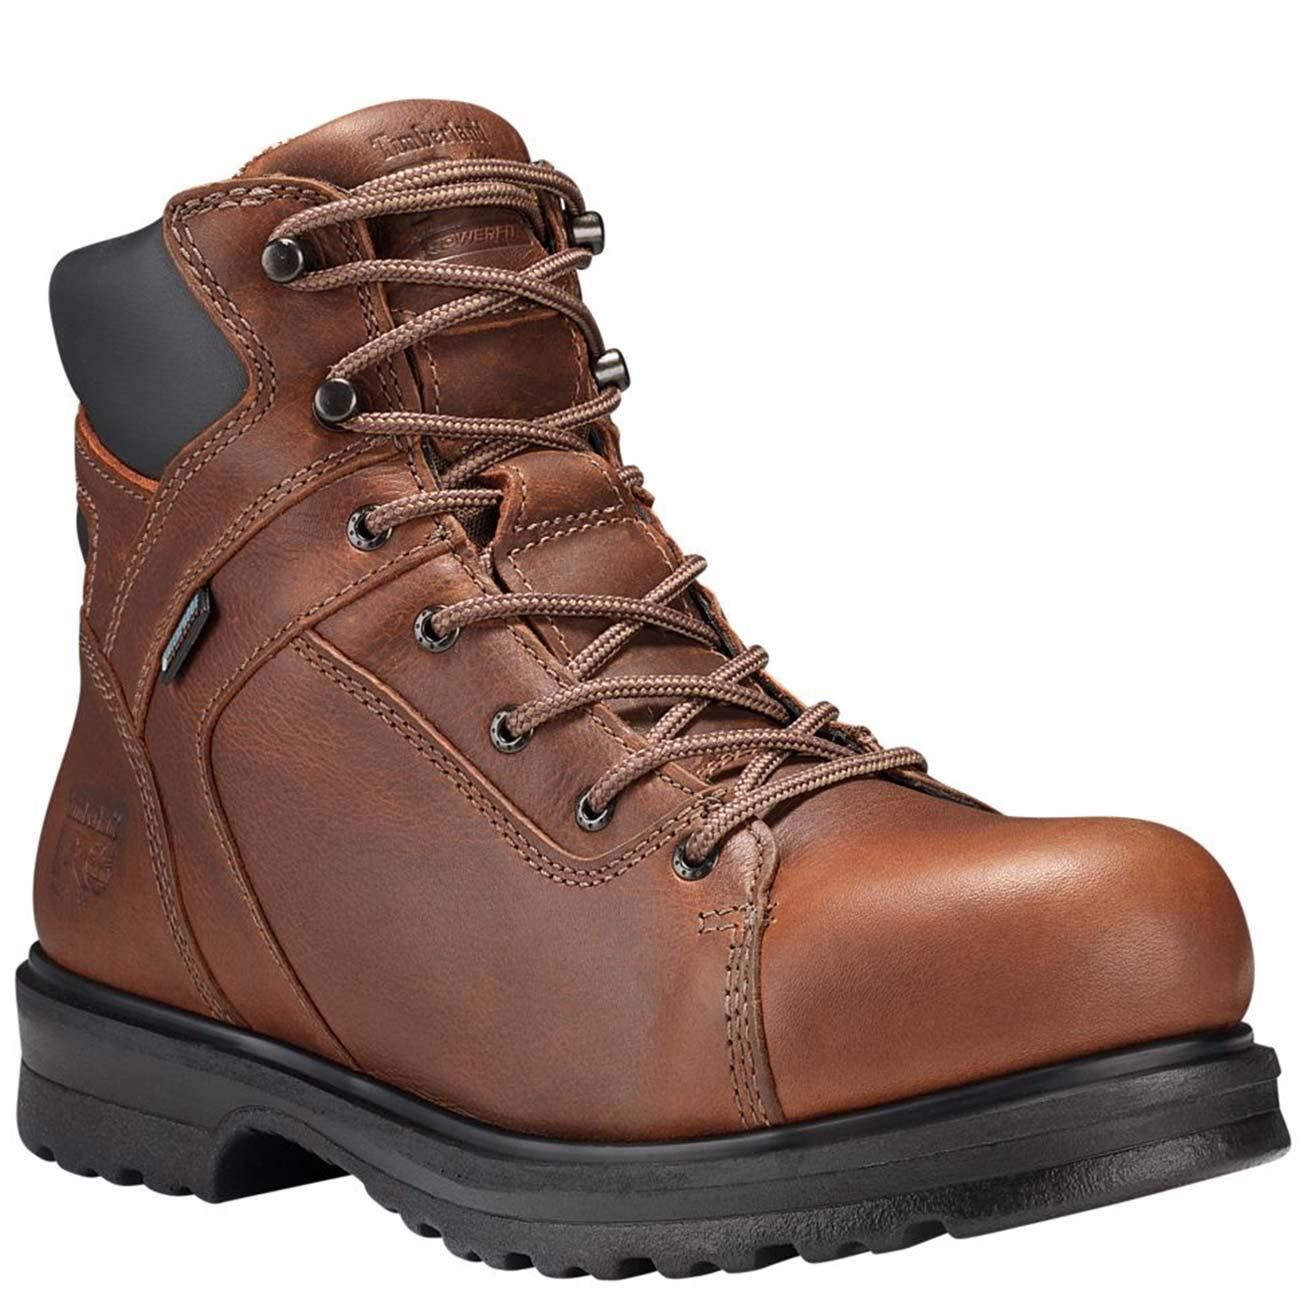 For sale Timberland Shoes (High Quality Replica) for sale